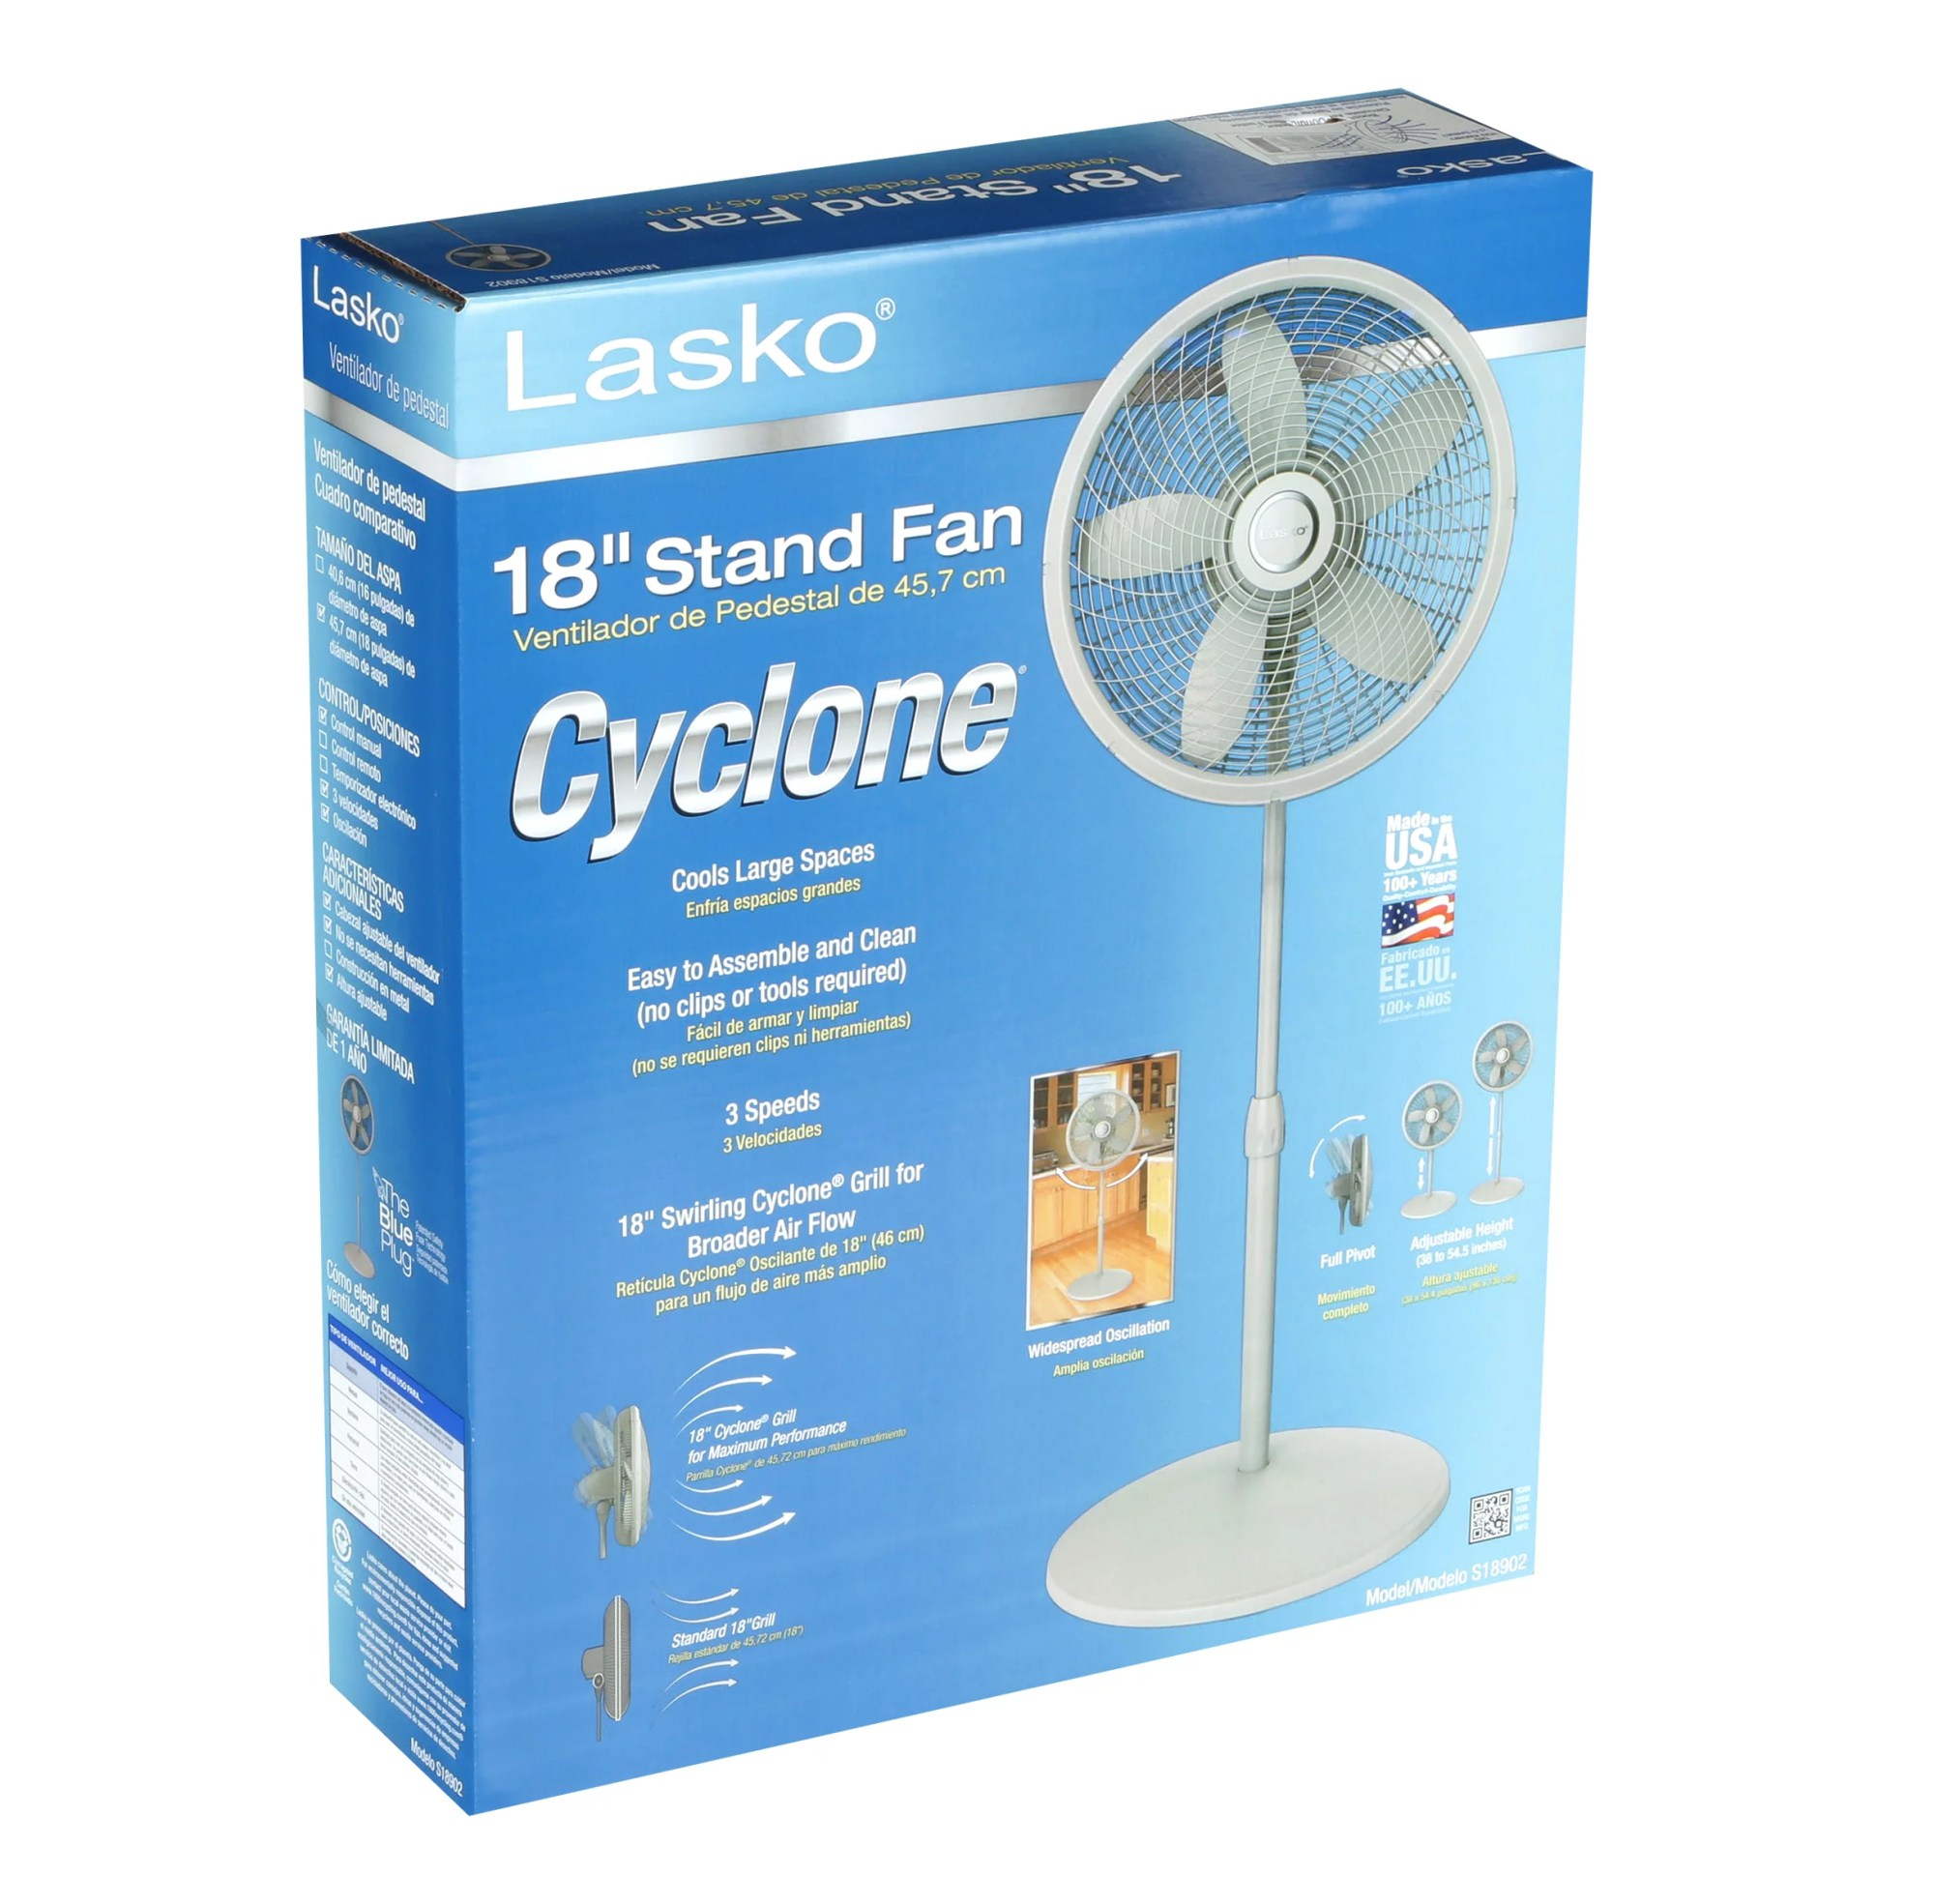 hight resolution of lasko 18 stand 3 speed fan with cyclone grill model s18902 white walmart com